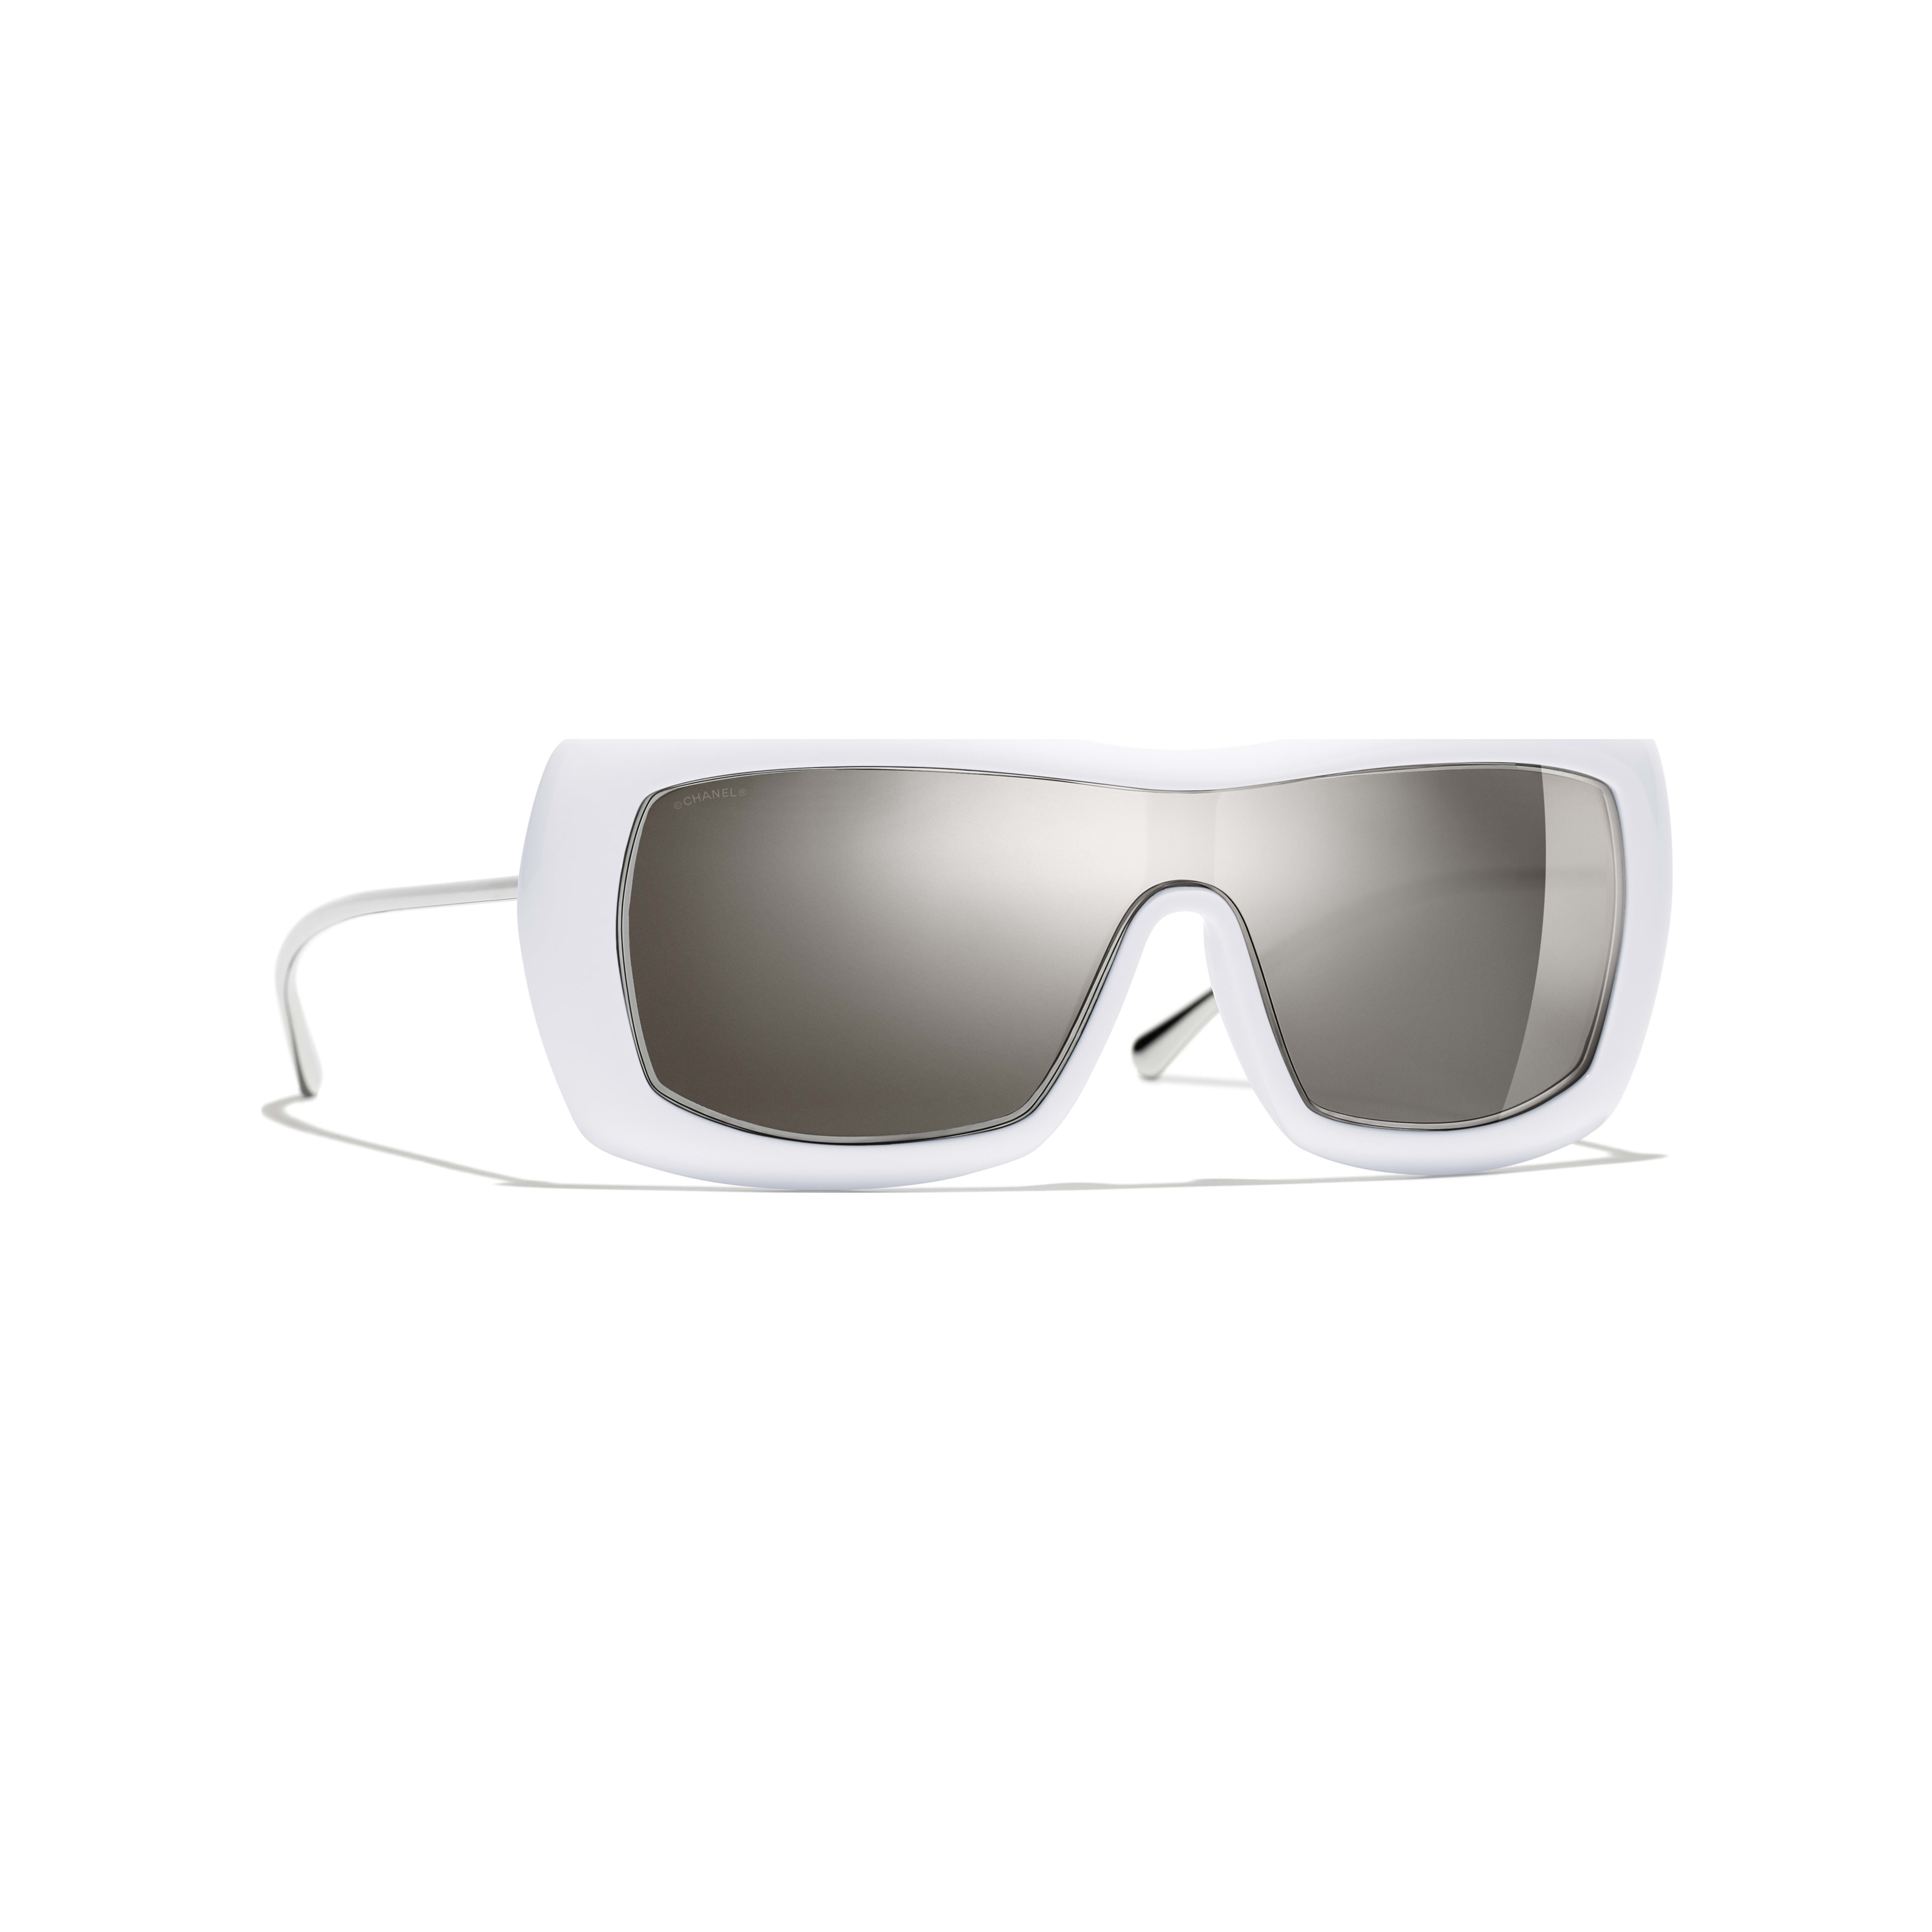 Shield Sunglasses - White - Acetate & Metal - Default view - see full sized version